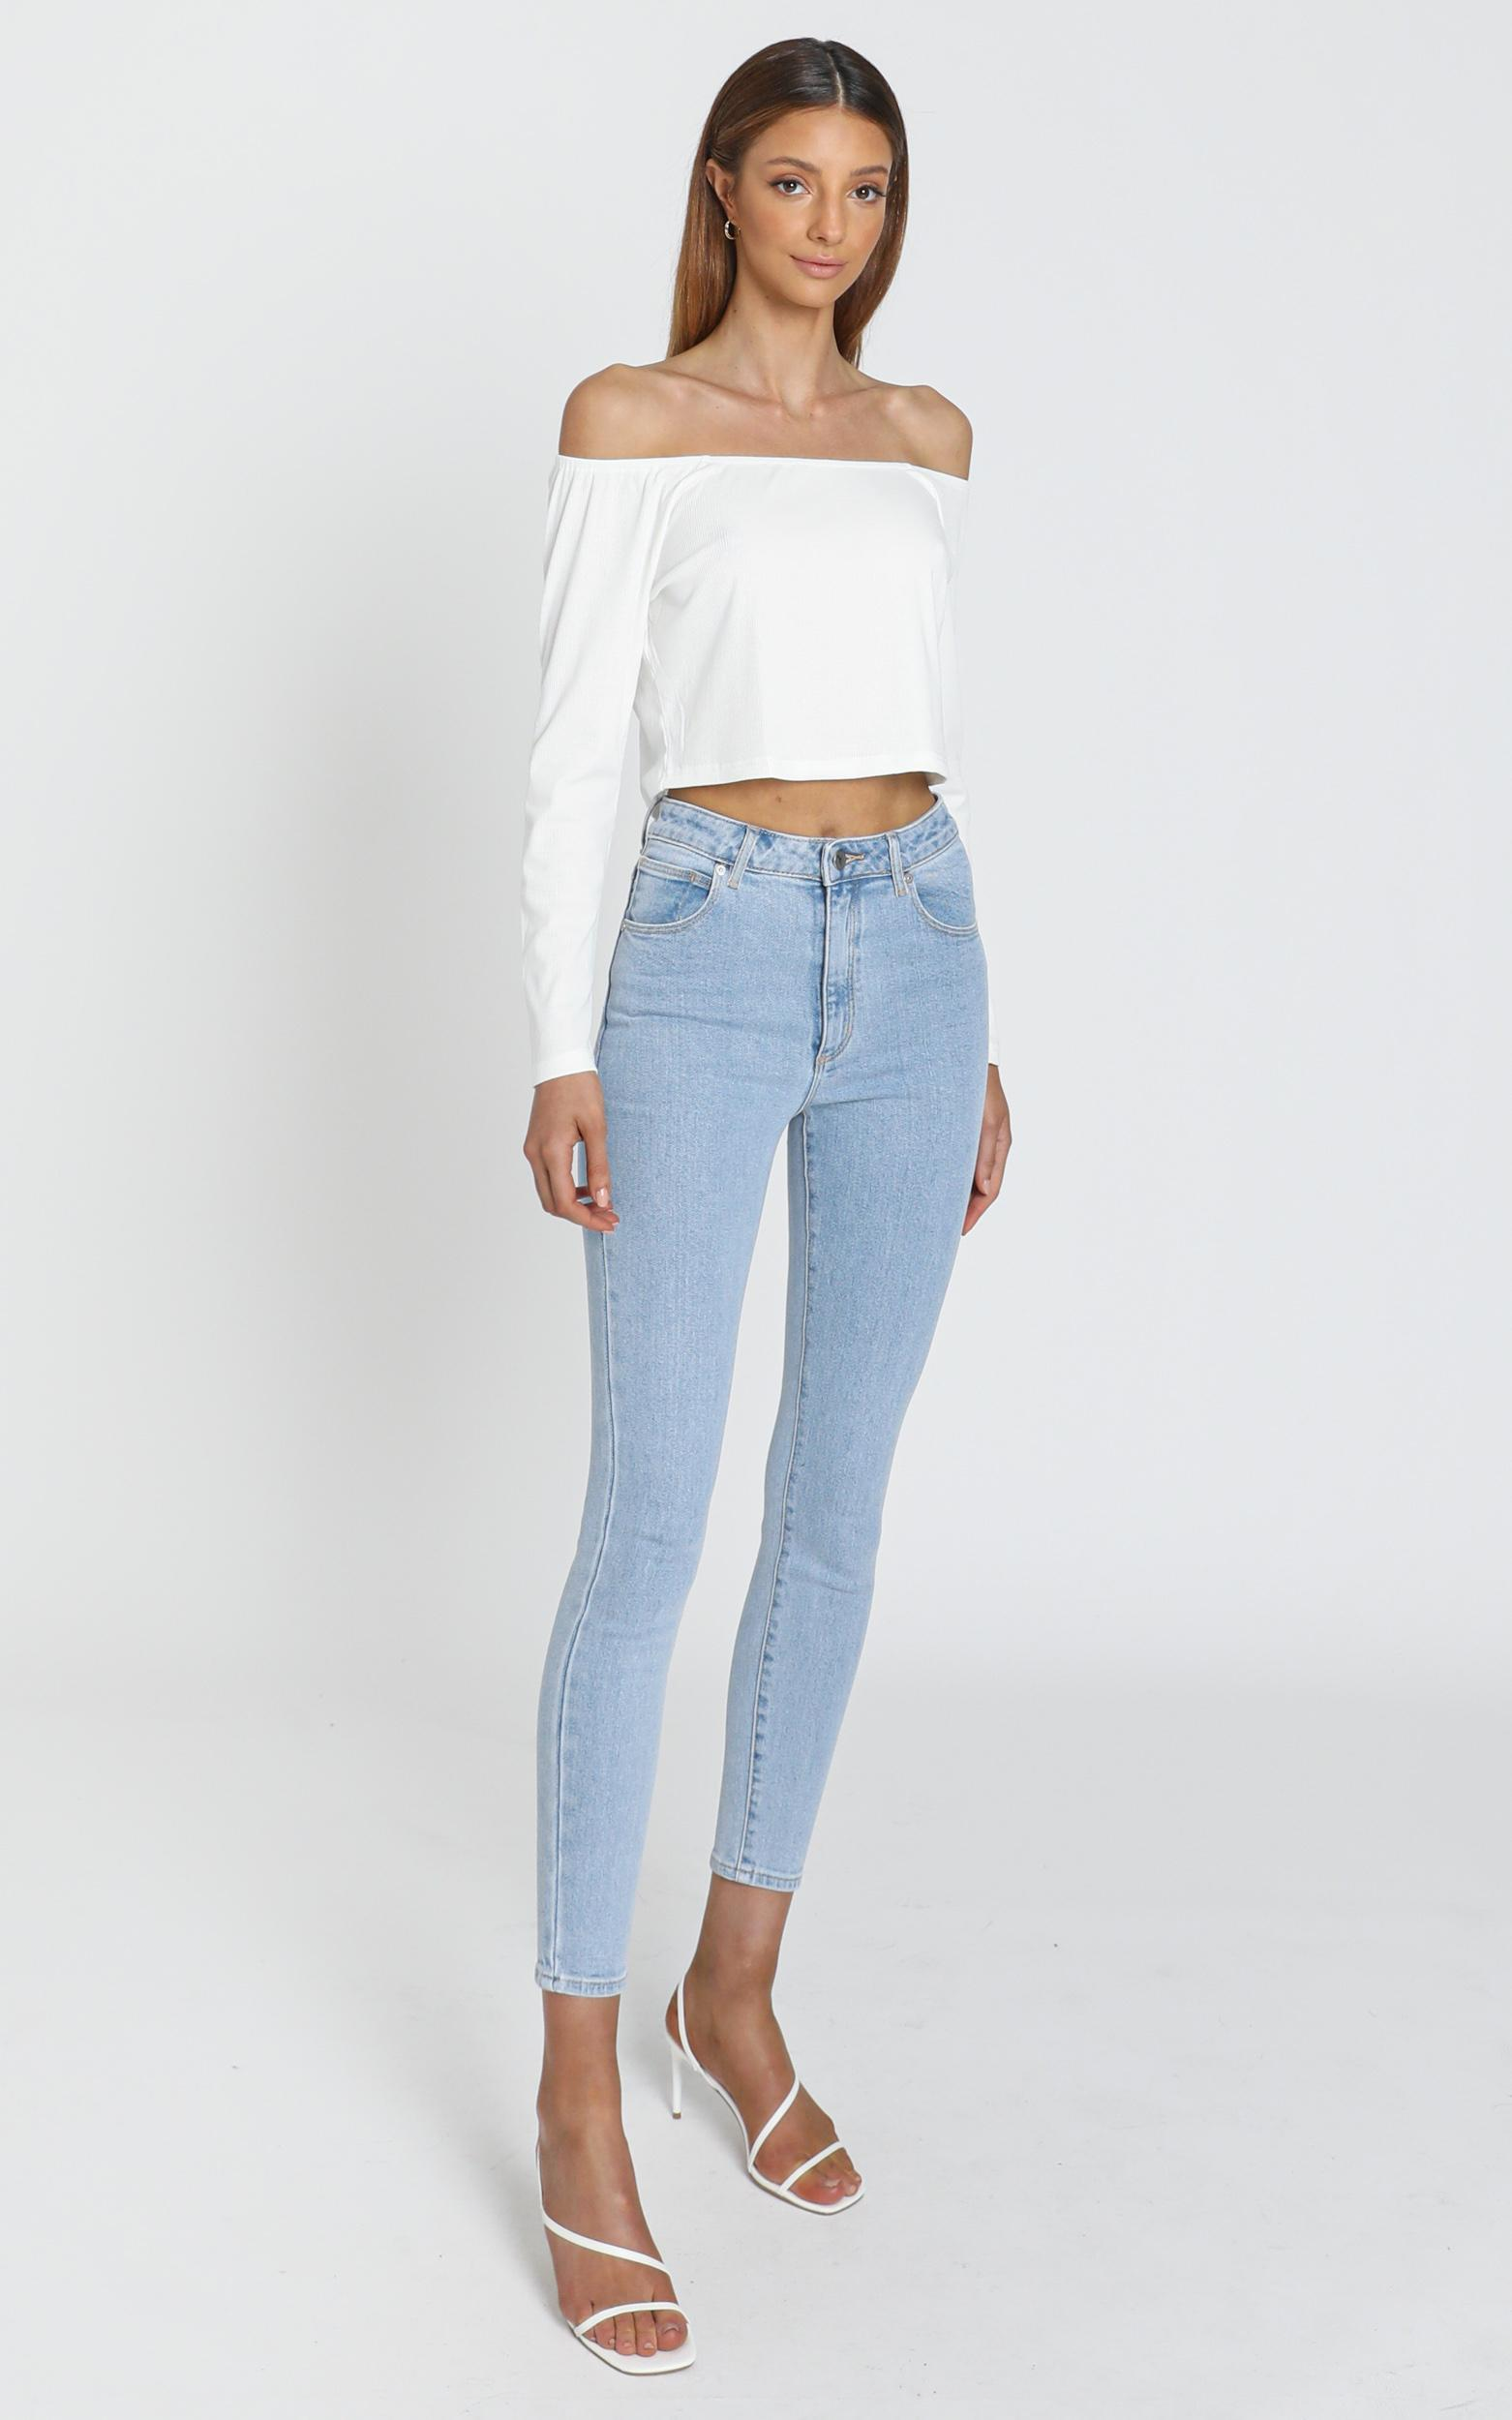 Helena Long sleeve top White - 6 (XS), White, hi-res image number null